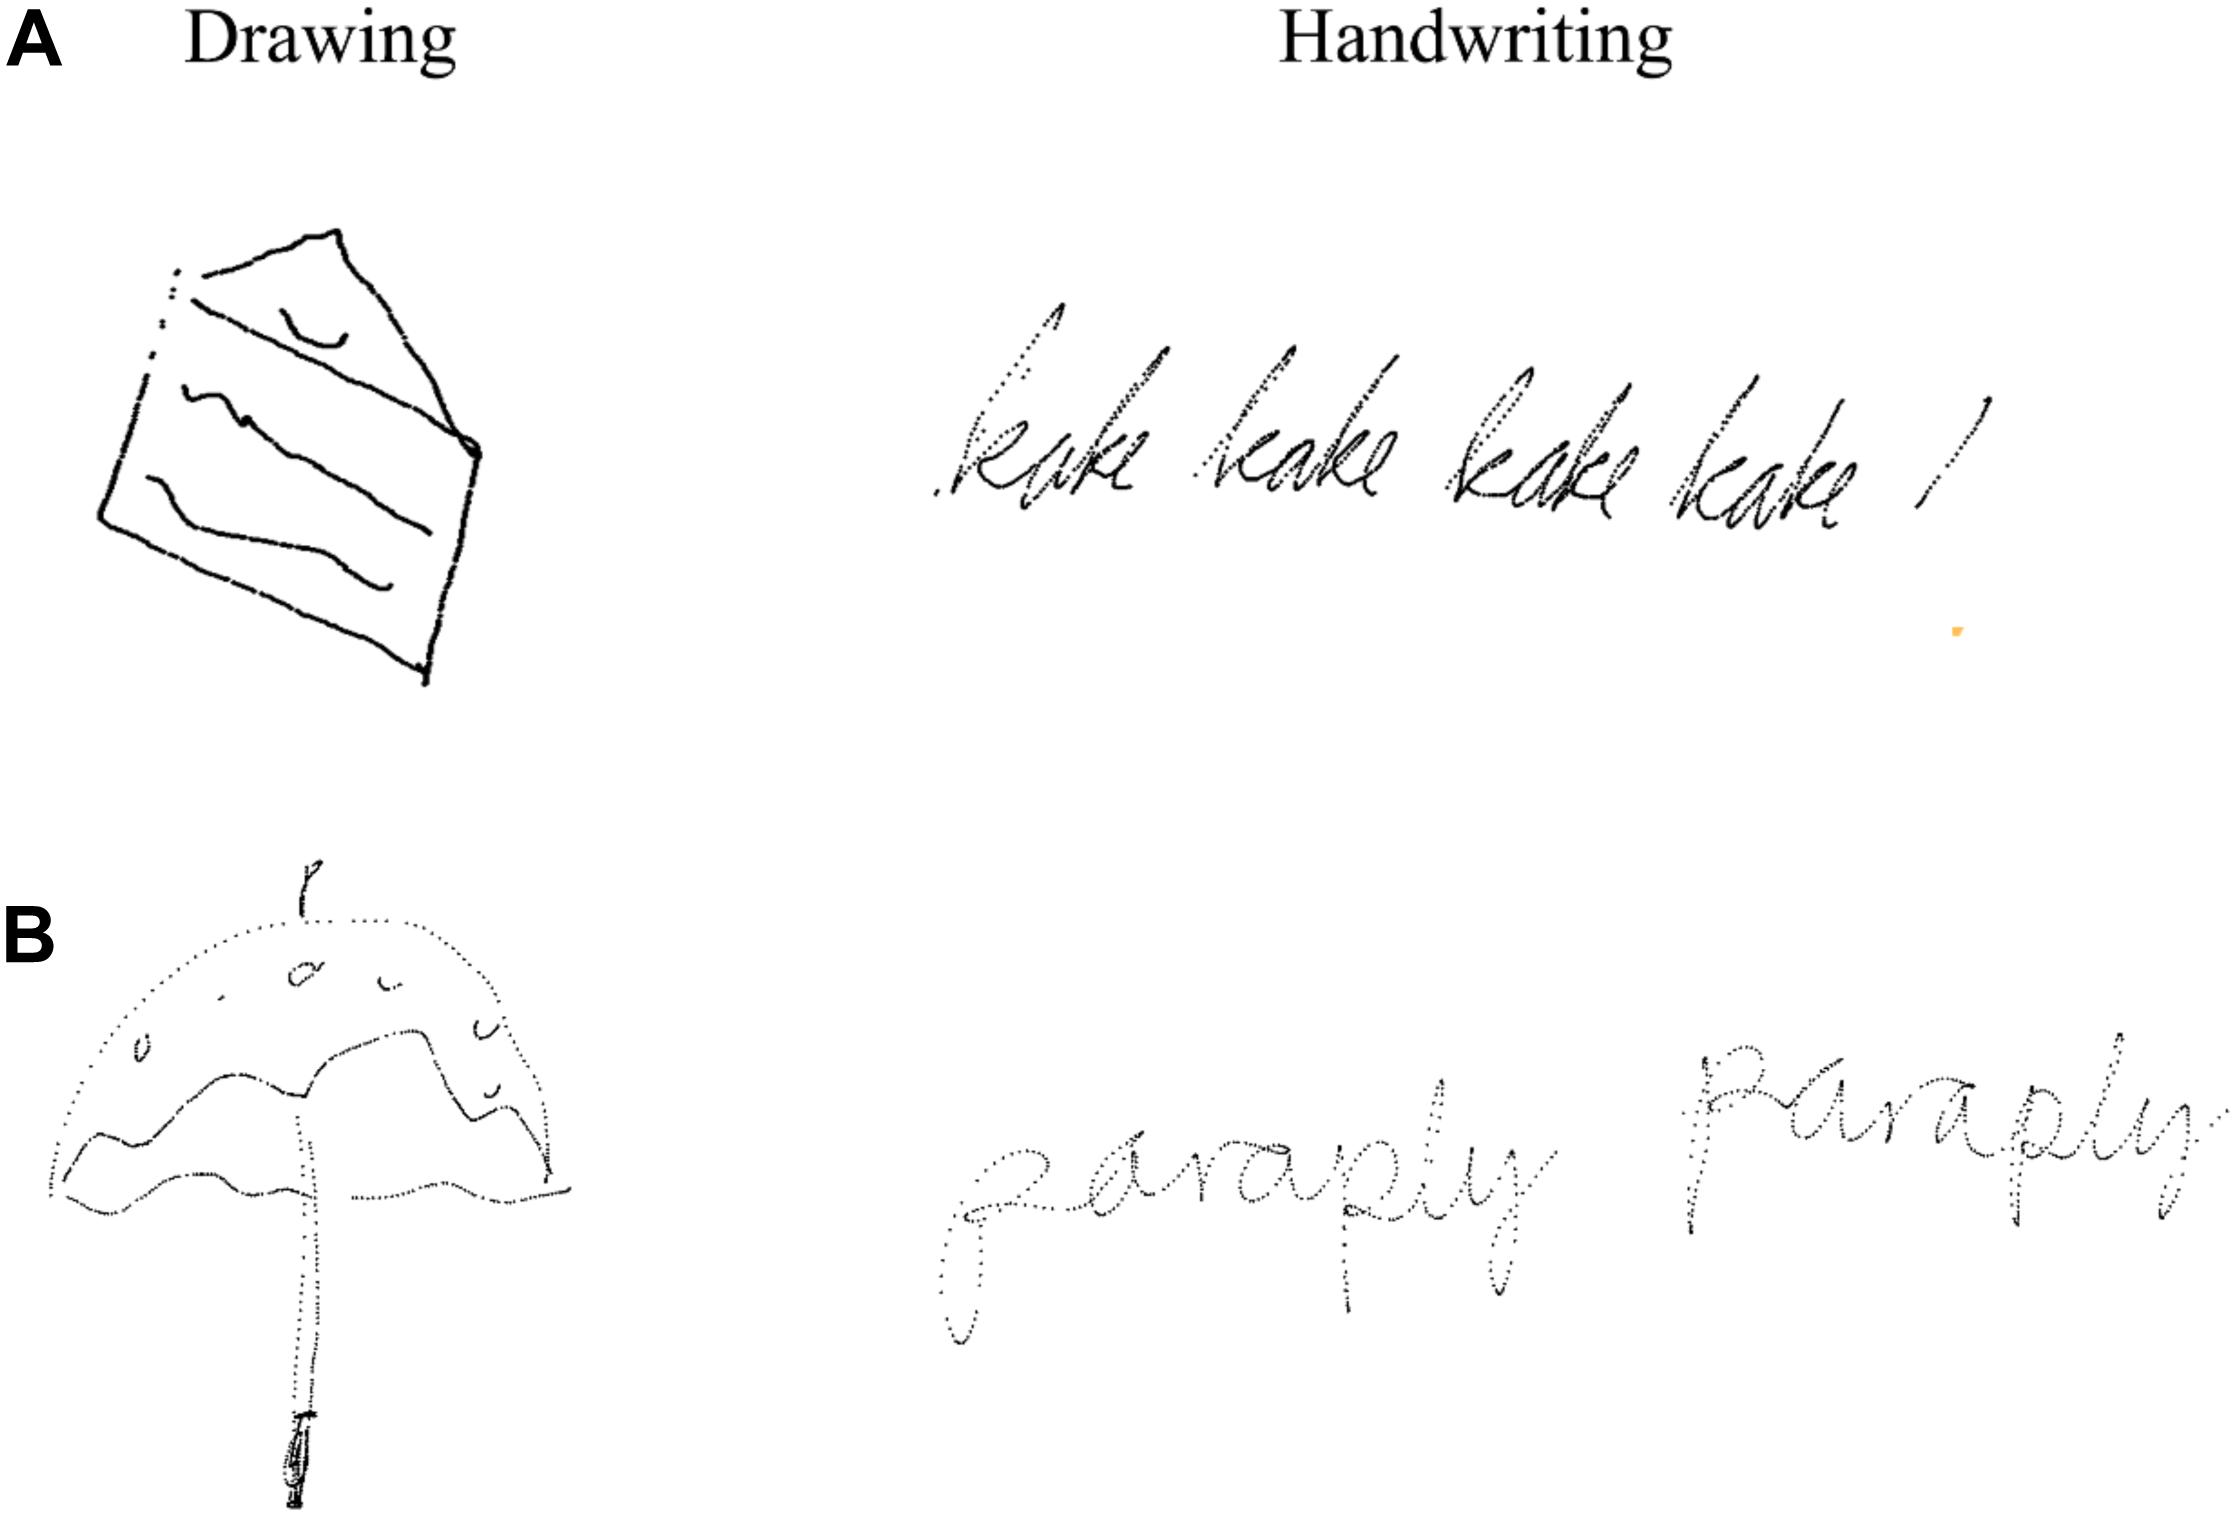 Frontiers The Importance Of Cursive Handwriting Over Typewriting For Learning In The Classroom A High Density Eeg Study Of 12 Year Old Children And Young Adults Psychology